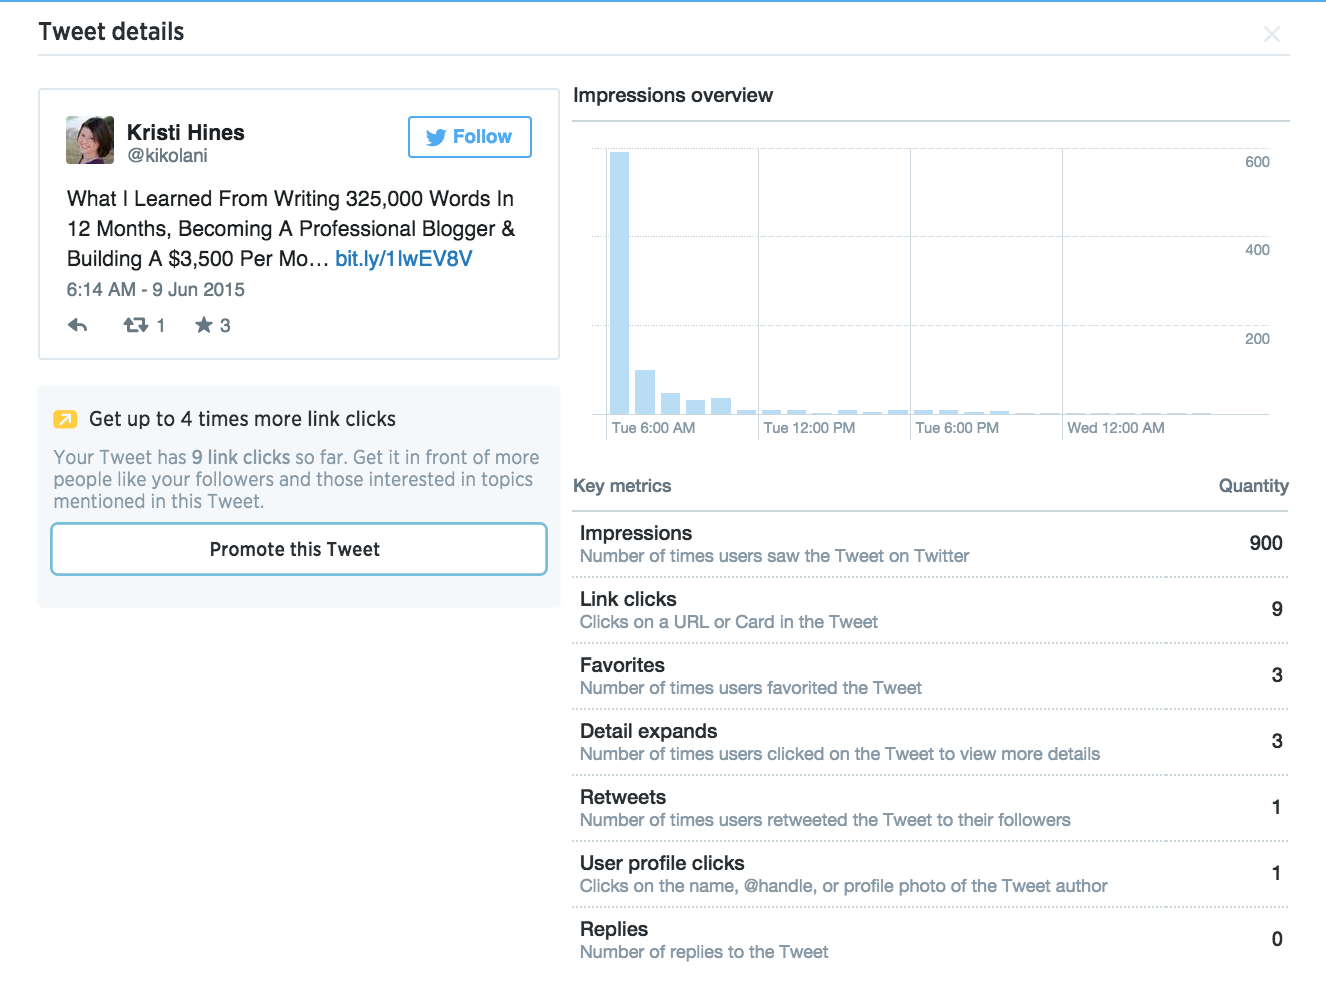 twitter metrics tweet details screenshot